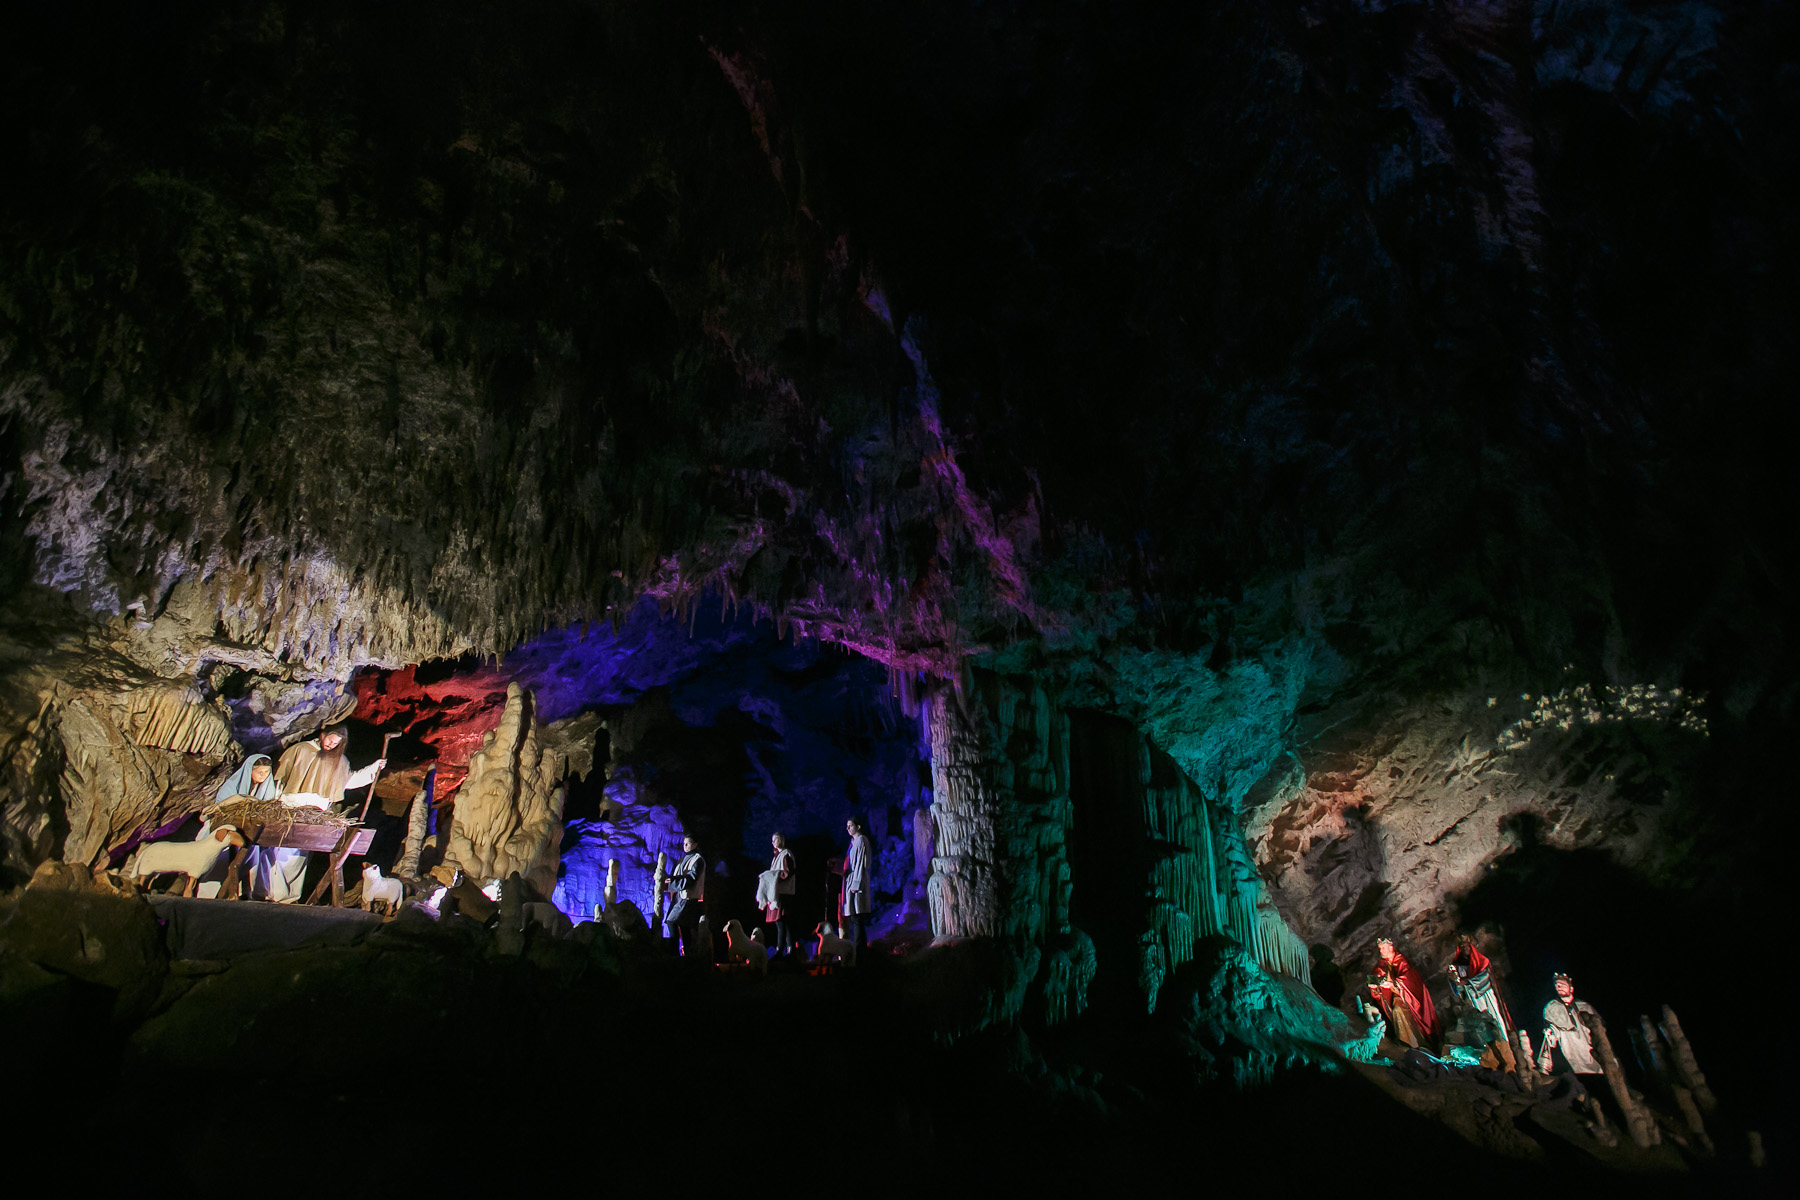 The world's largest live Nativity scene in a cave is staged in the world-famous Postojna Cave in Slovenia, Dec. 25, 2015.